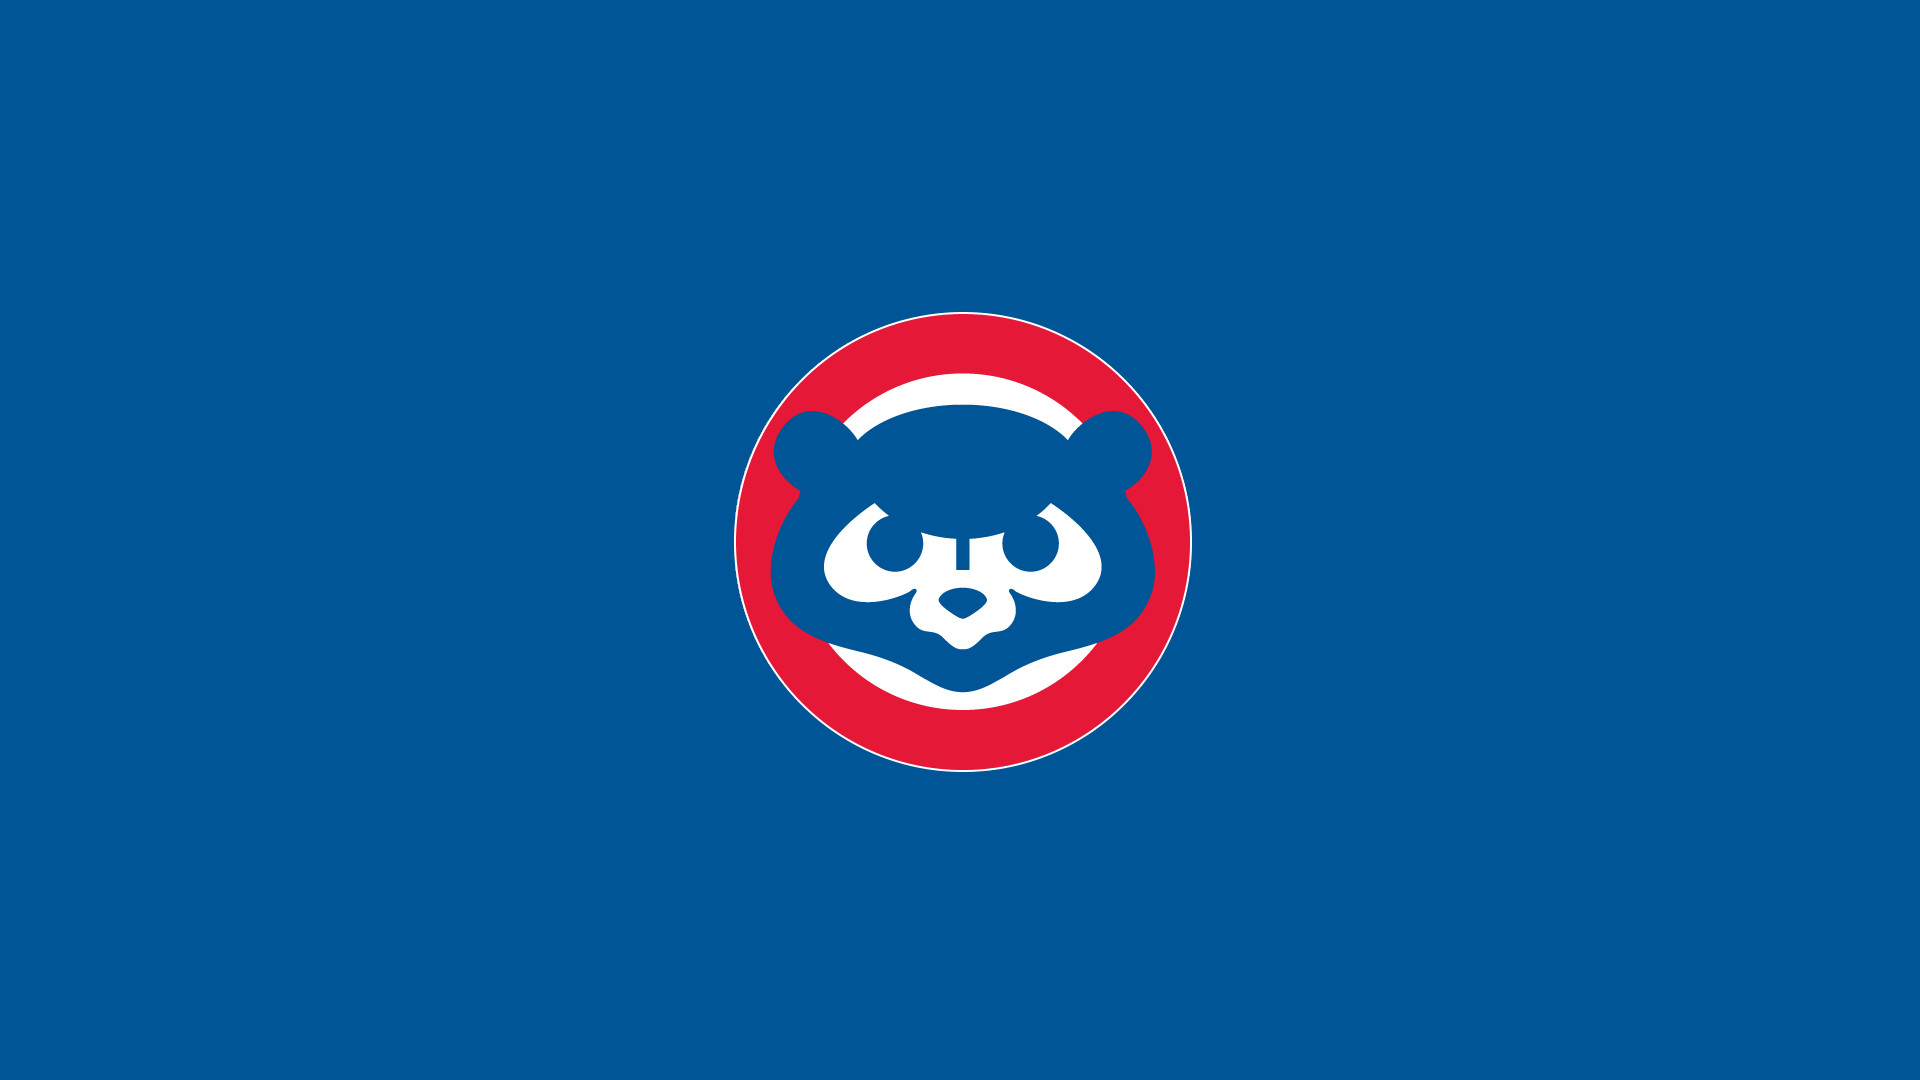 1920x1080 Best 20+ Cubs wallpaper ideas on Pinterest | Chicago cubs wallpaper, Did the